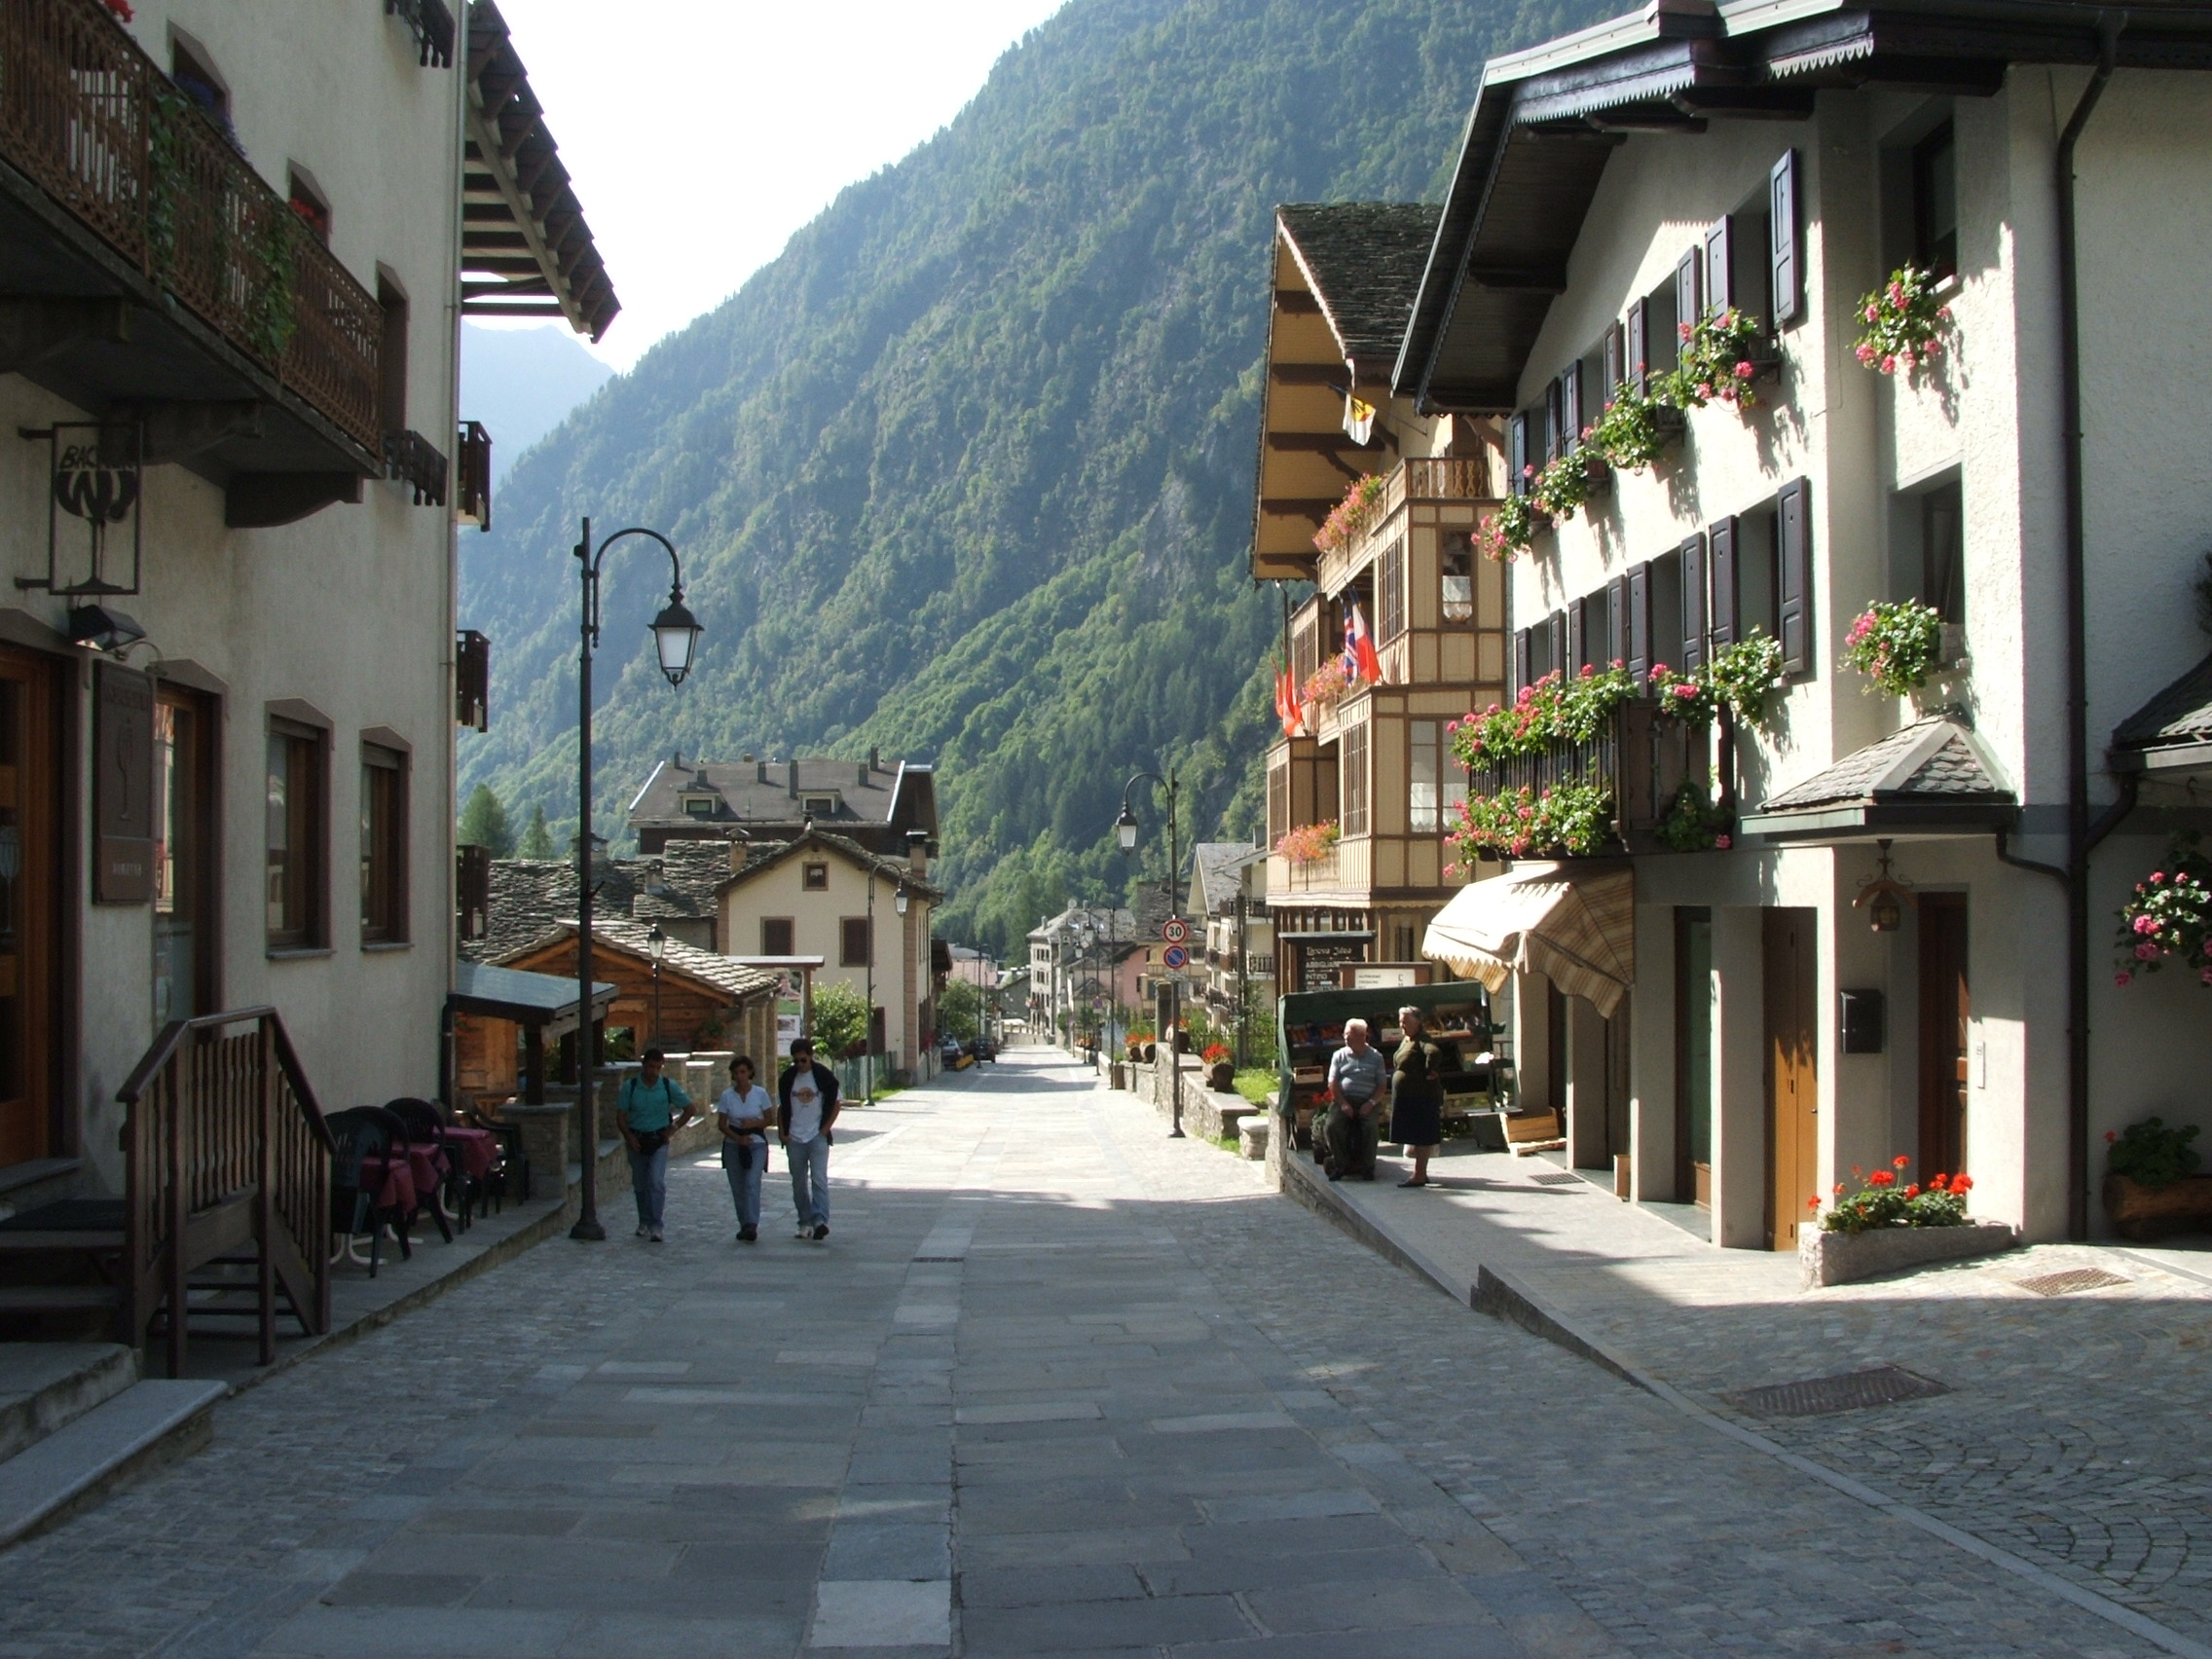 alagna valsesia bbw personals Discover (and save) your own pins on pinterest carcoforo, valsesia, vercelli, piemonte carcoforo, valsesia, vercelli, piemonte pinterest.